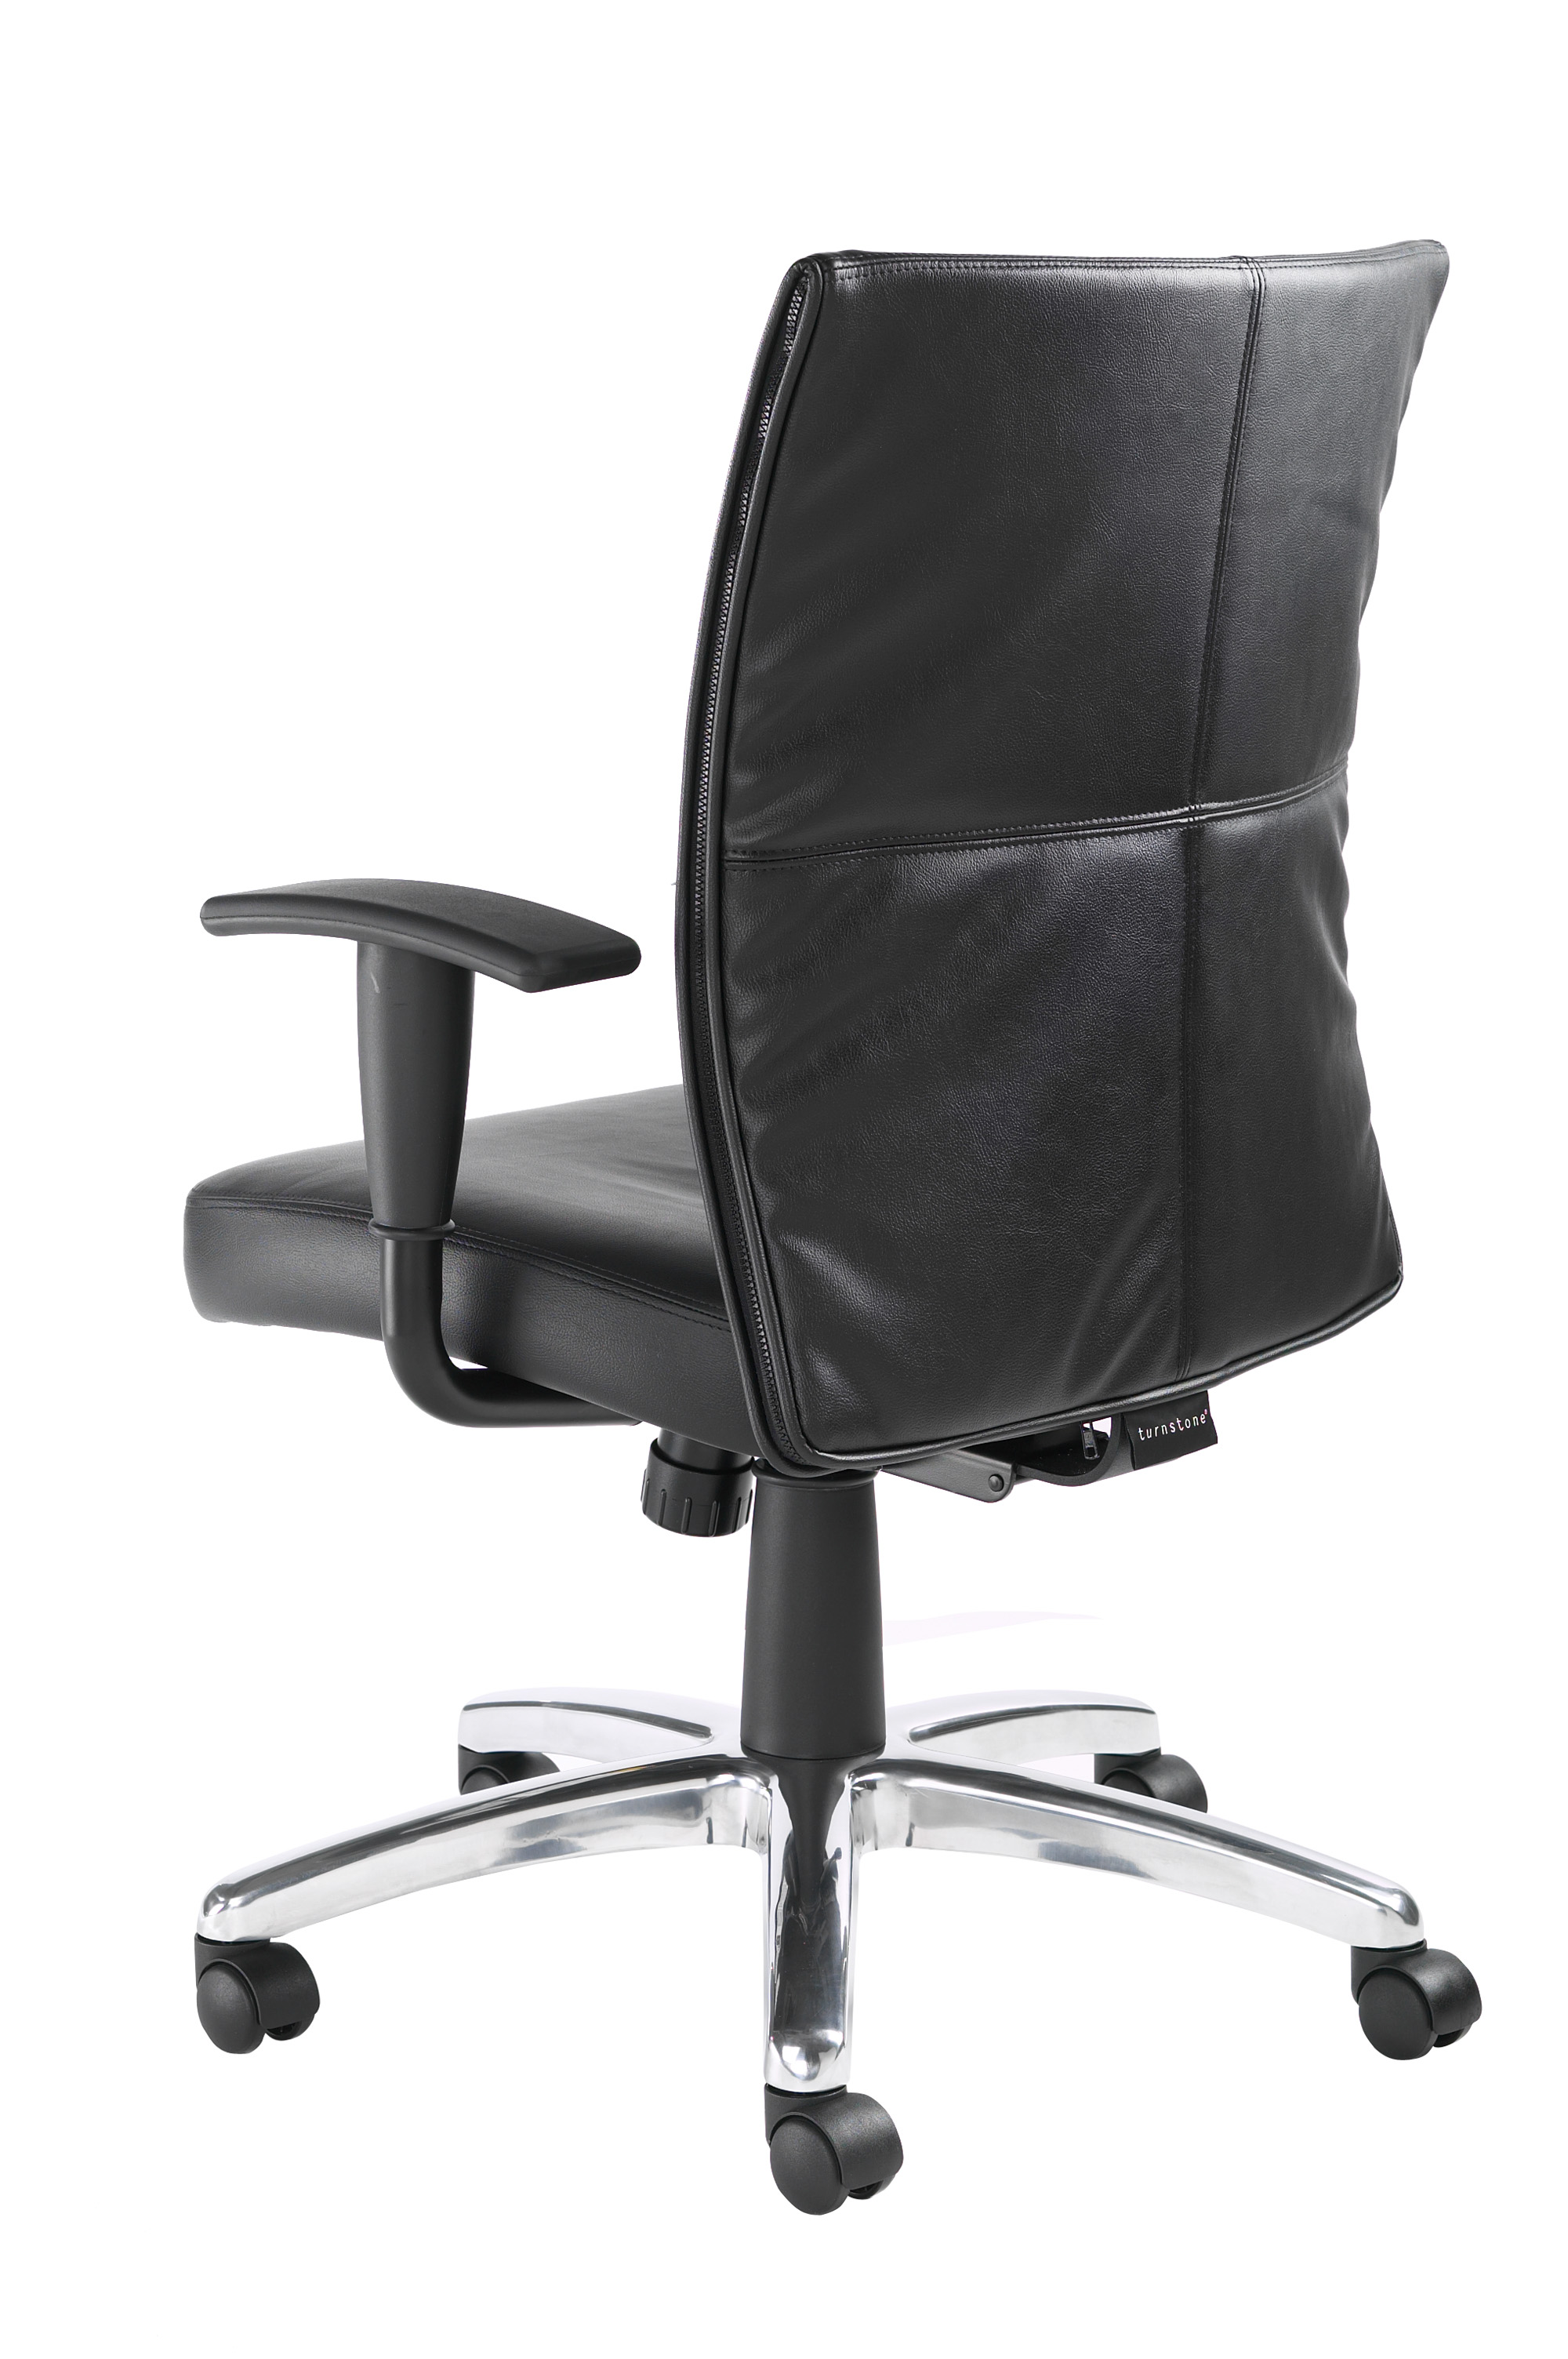 Jacket Task Chair, Rear View